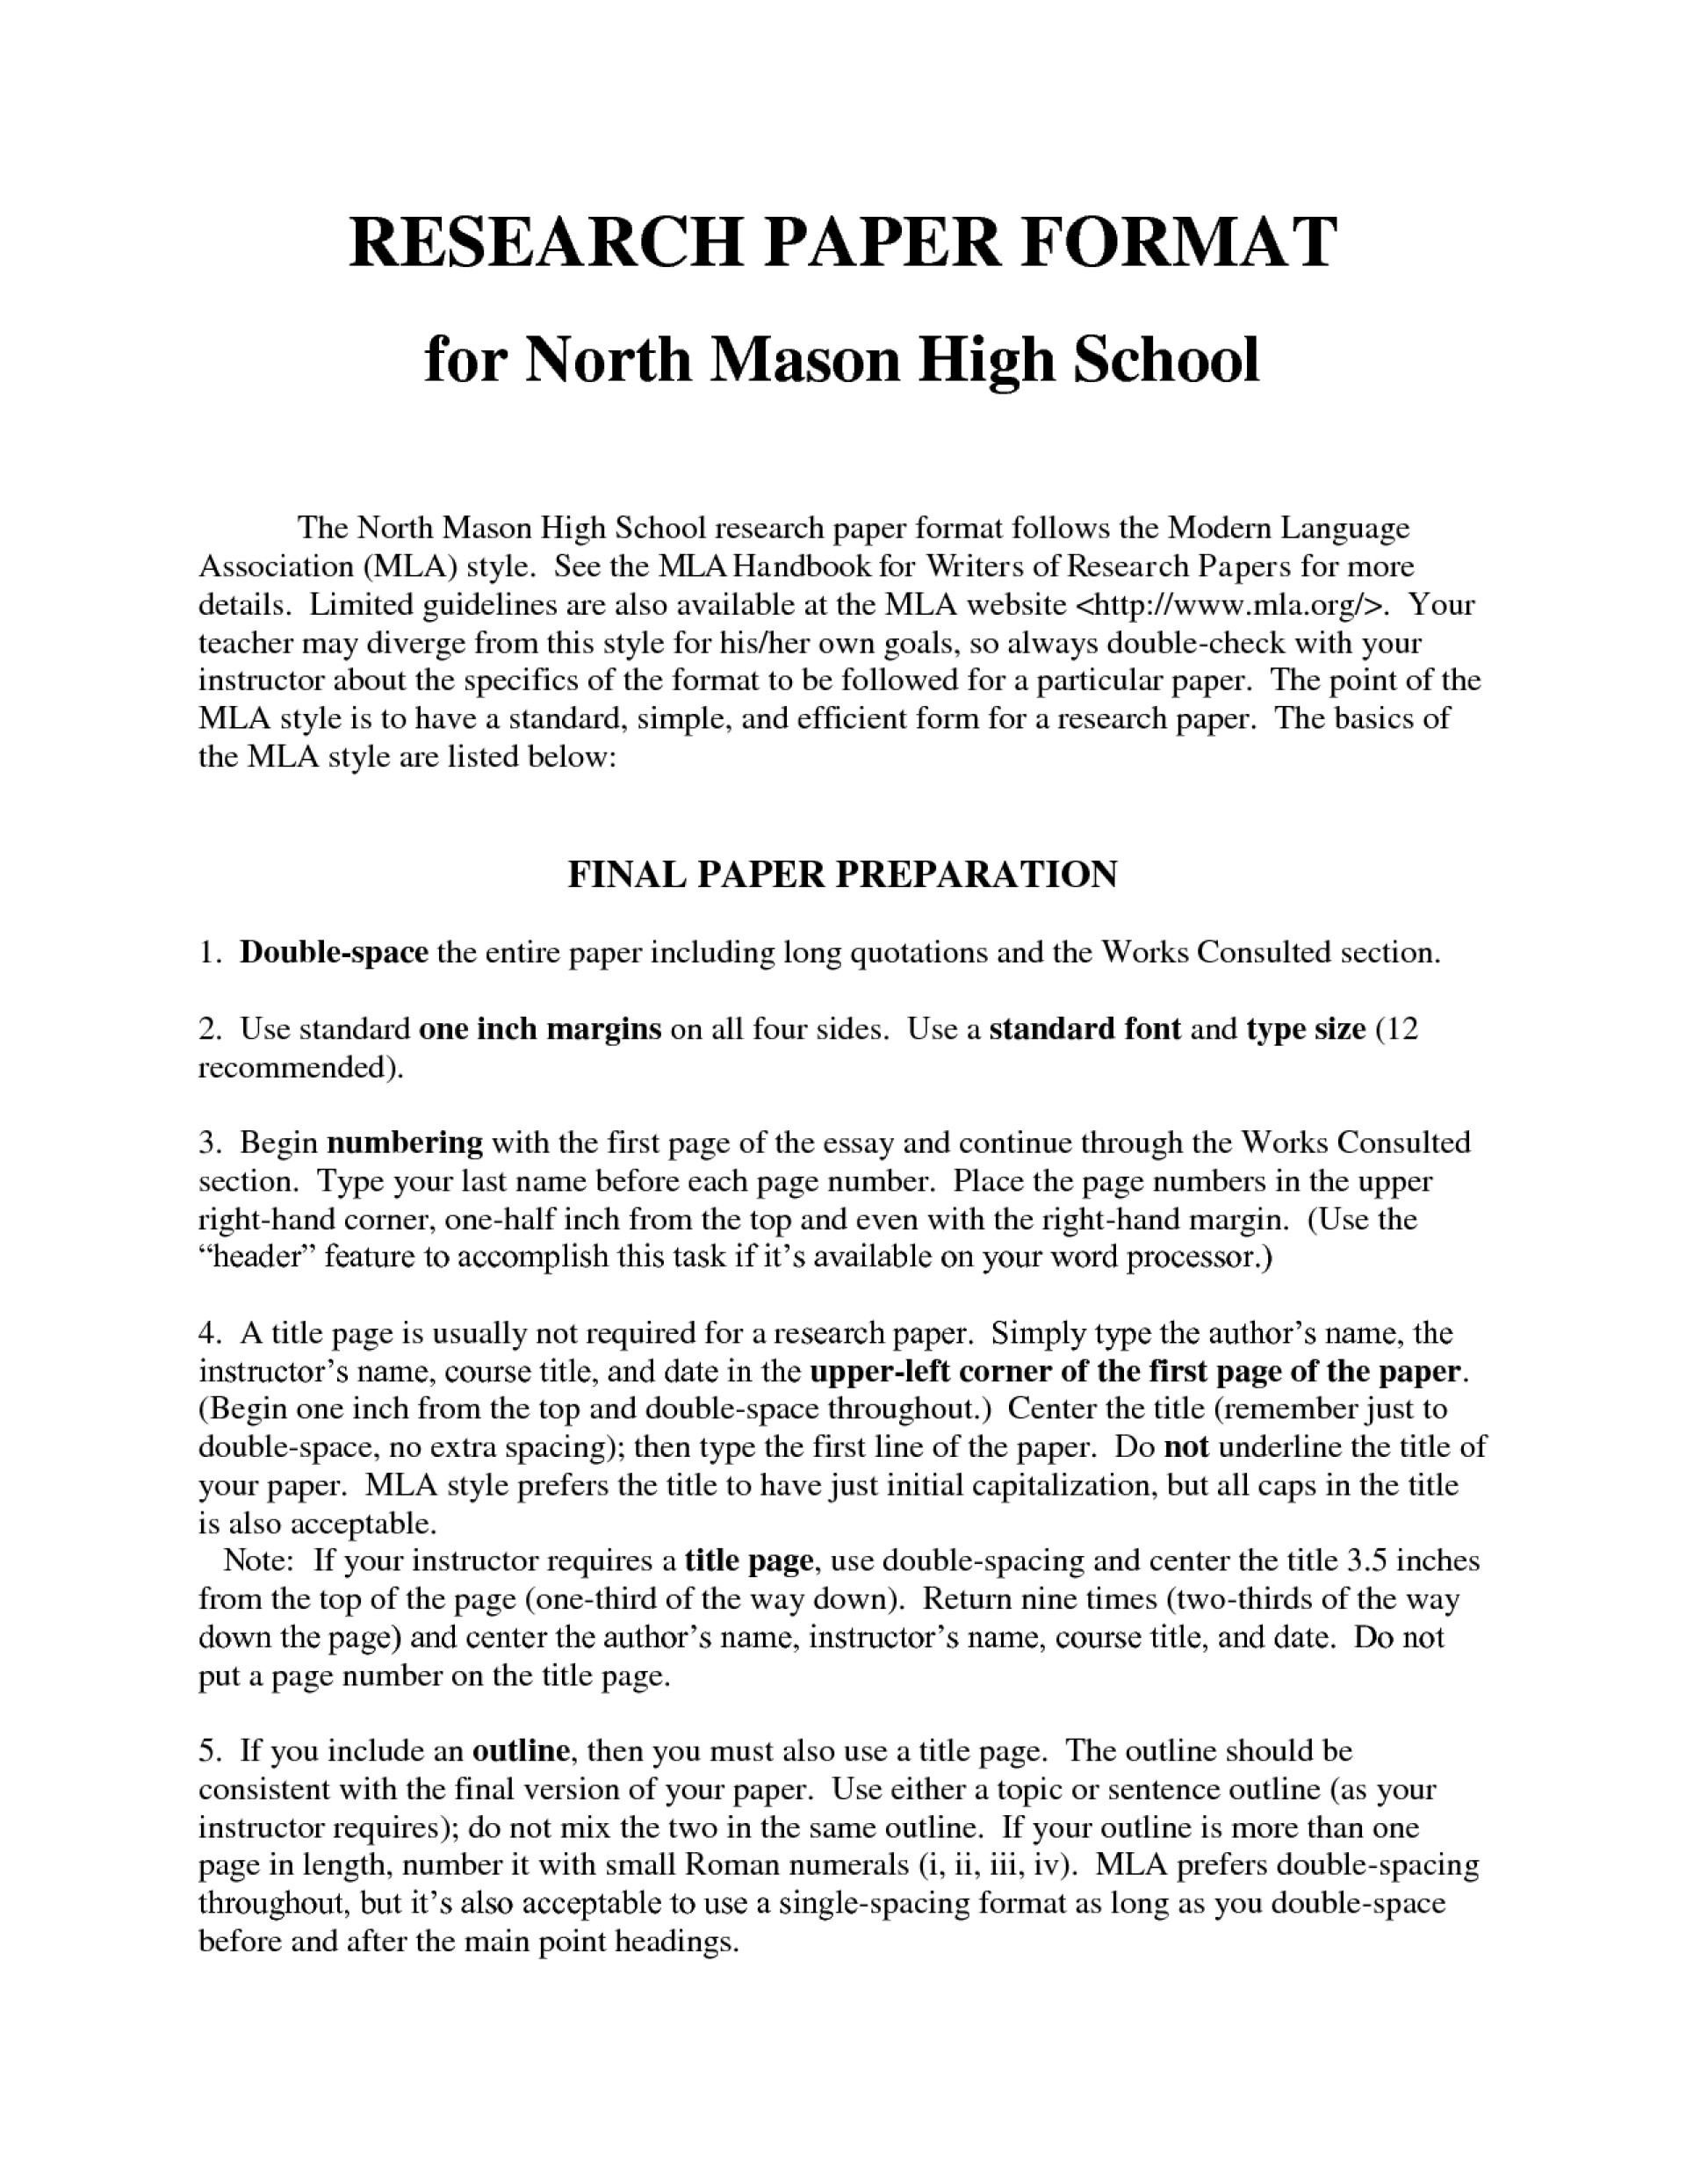 010 Research Paper N7ievzppvr High School Example Excellent Mla 1920